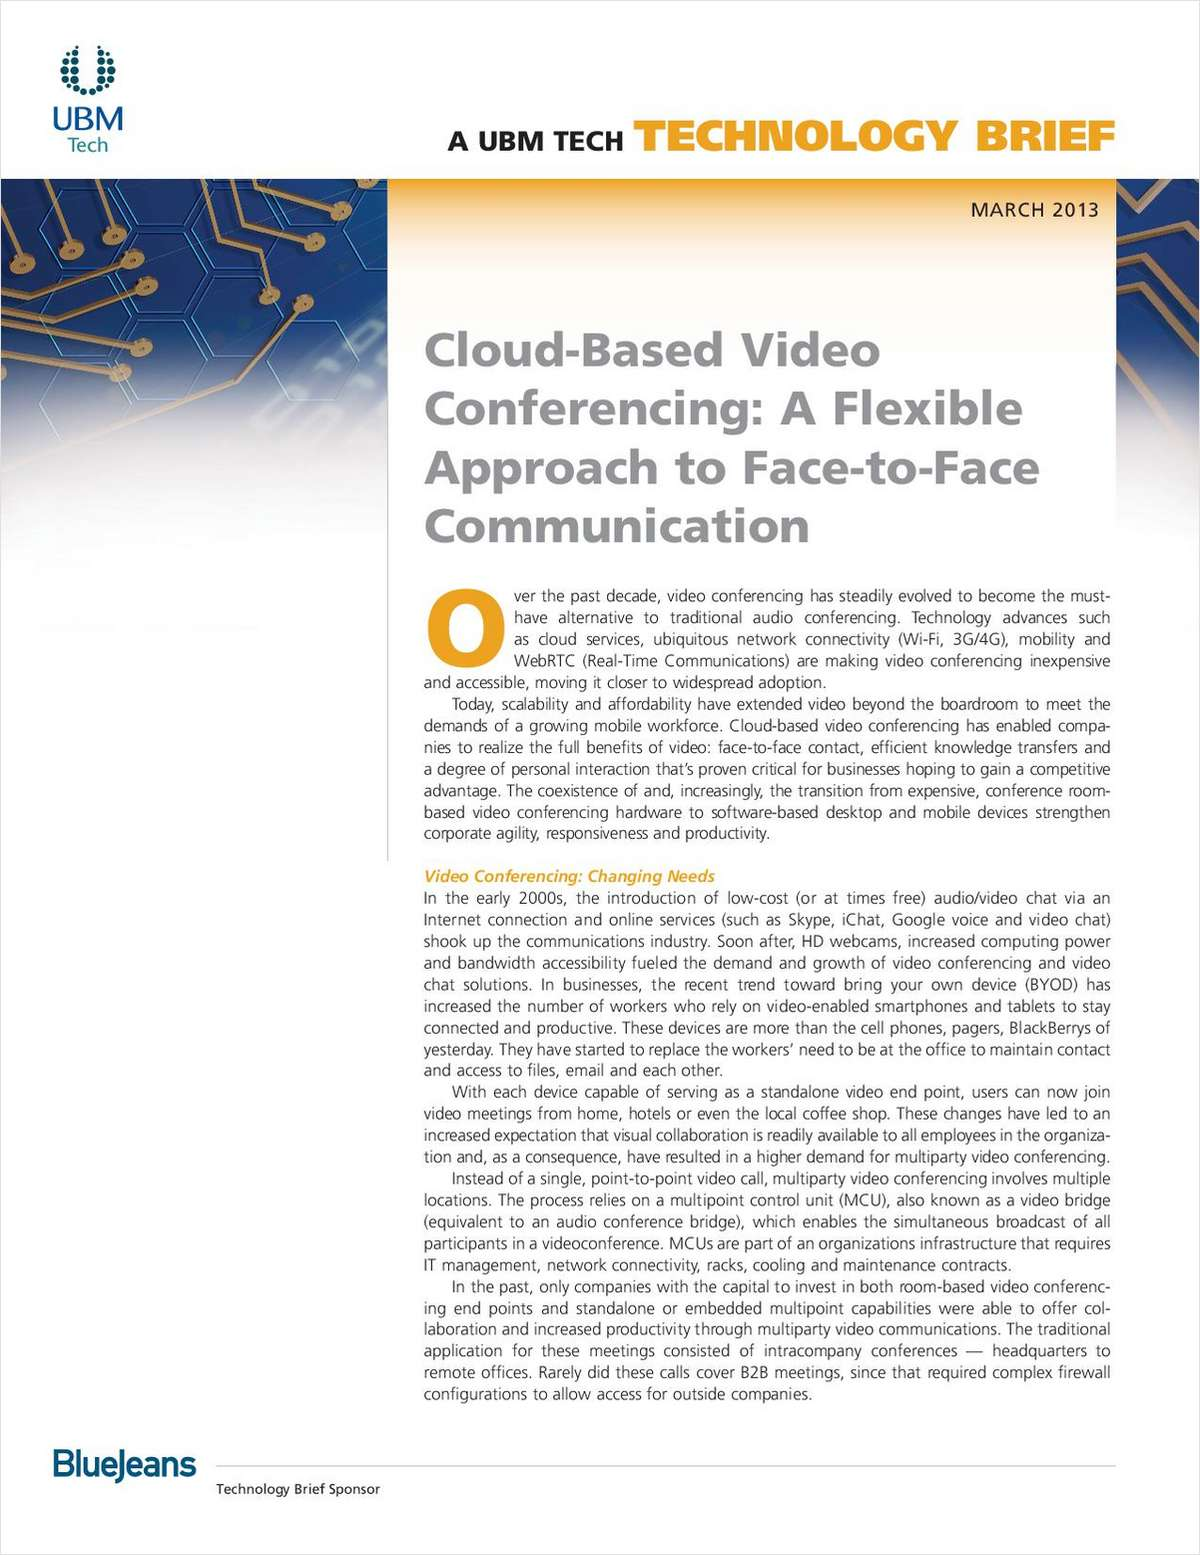 Cloud-Based Video Conferencing: A Flexible Approach to Face-to-Face Communication